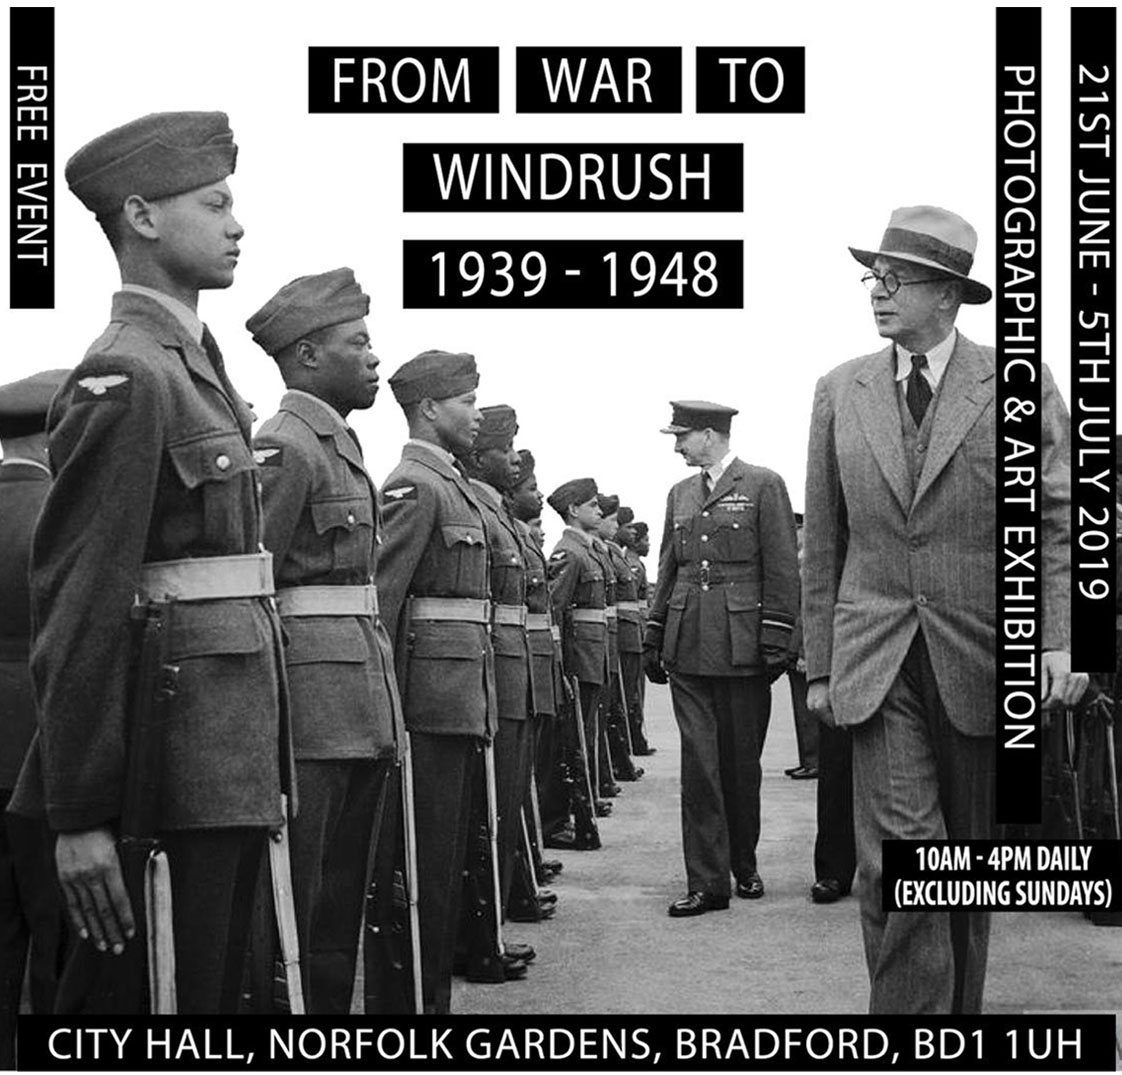 From War to Windrush Photographic and Art Exhibition